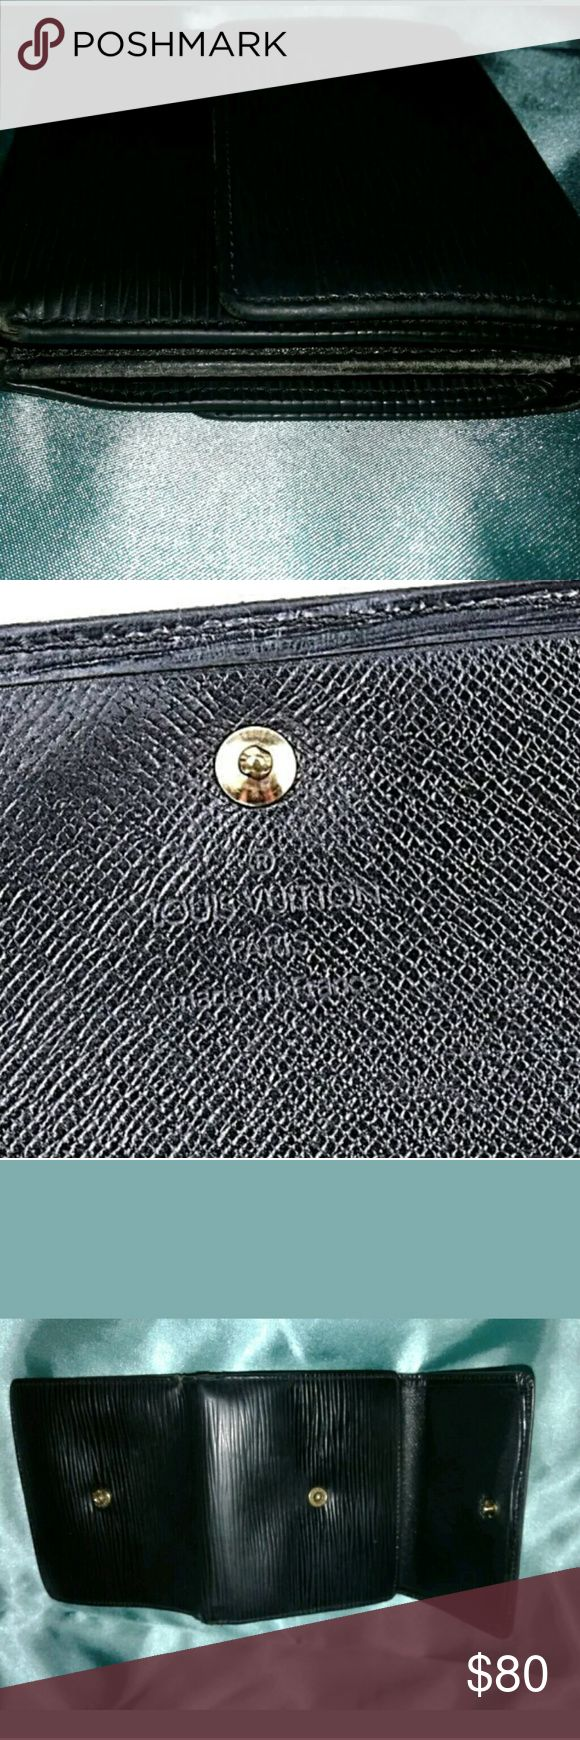 """Louis Vuitton EPI BiFold Mens Wallet Authentic Louis Vuitton Wallet  Material: Leather  Color: Black  Model: EPI Bi-Fold Wallet  Date Code: CA0916  Measurements: Closed: 4.25"""" x 4"""" x .75""""  ..............Open: 10"""" x 4.25"""" x .25""""  Exterior: Very Good to ExcellenFrom What I Can Yell, Peeling of the Interior is Common  Interior: Good with Some Peeling-Please See ALL Photos  Date Code is Worn and a Little Hard to Read; Located Inside Plenty of Room For Credit Card/ID with 6 Slots  All Our…"""